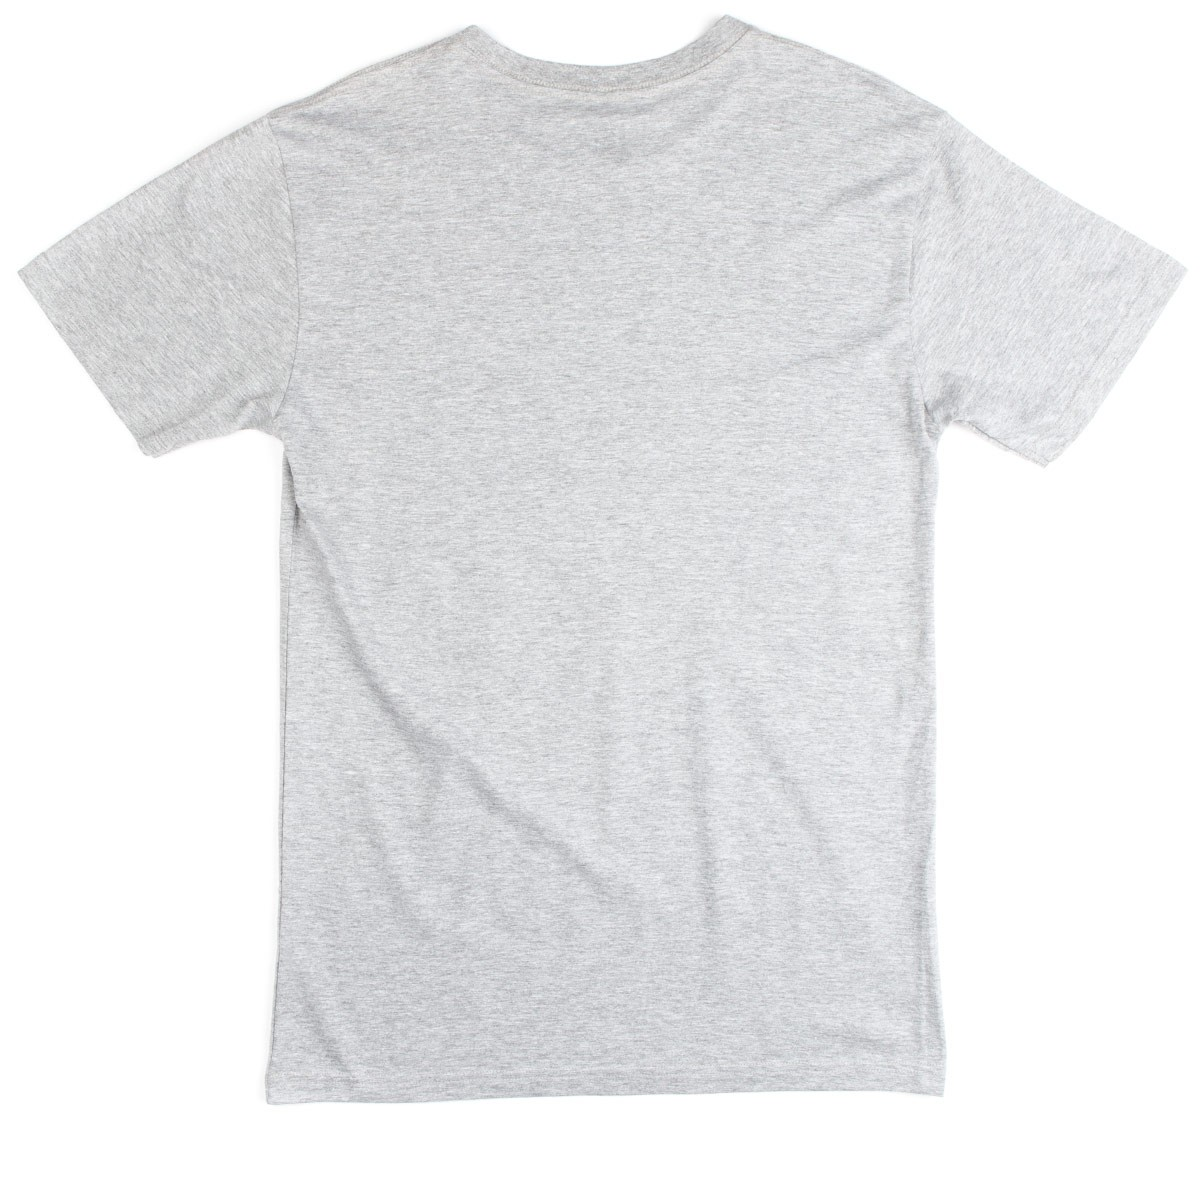 Dc loose angeles t shirt heather grey for Mens heather grey t shirt